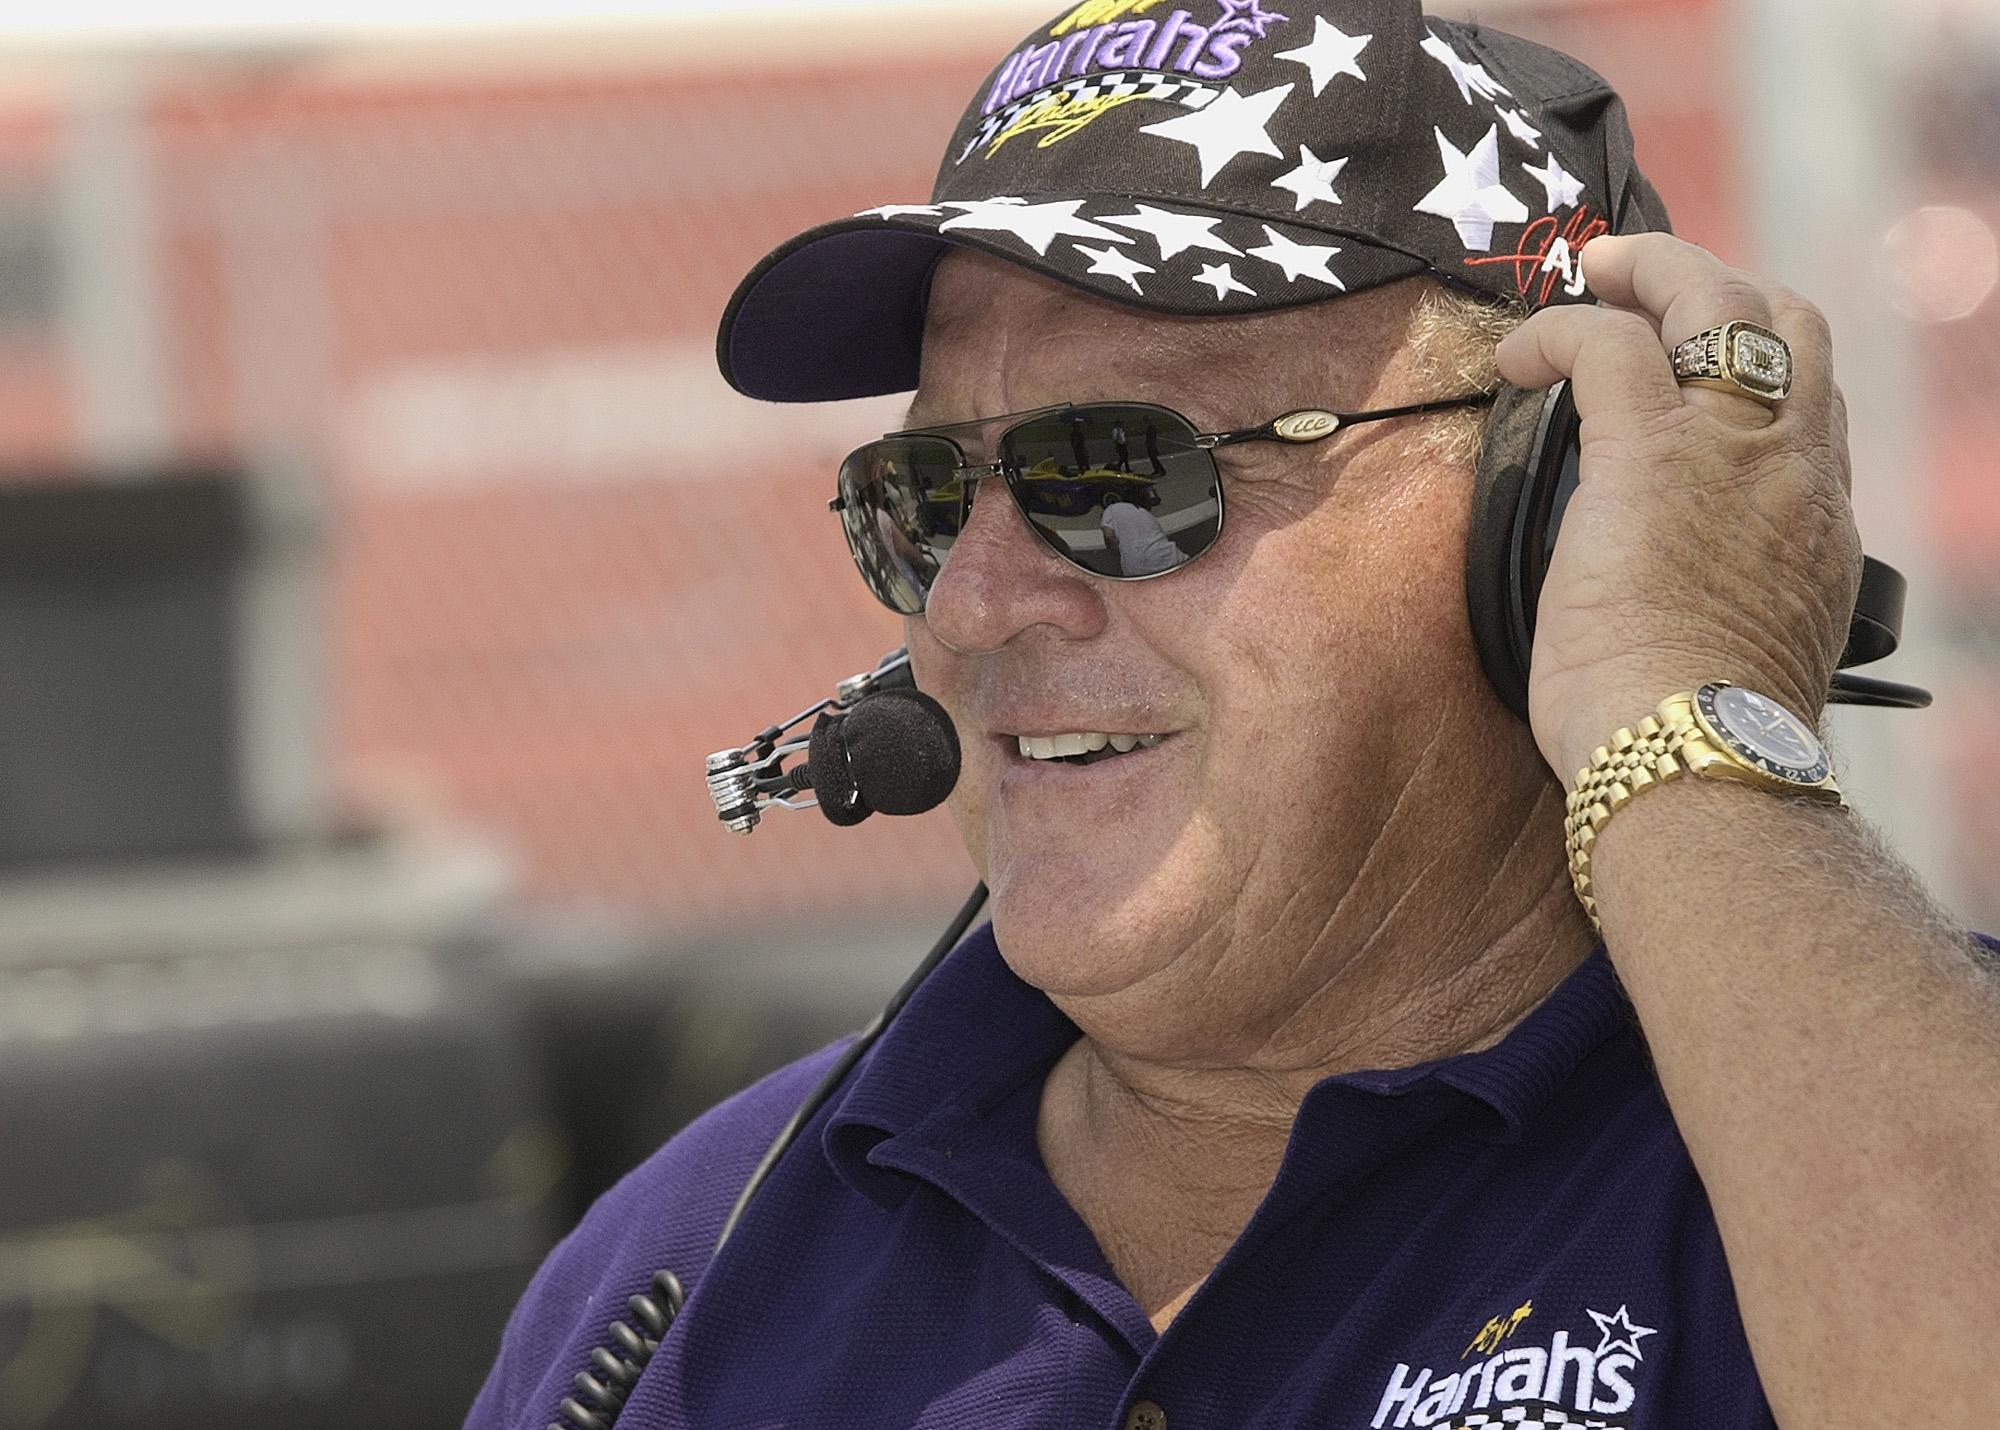 On Indy 500 weekend, A.J. Foyt staying busy in Houston